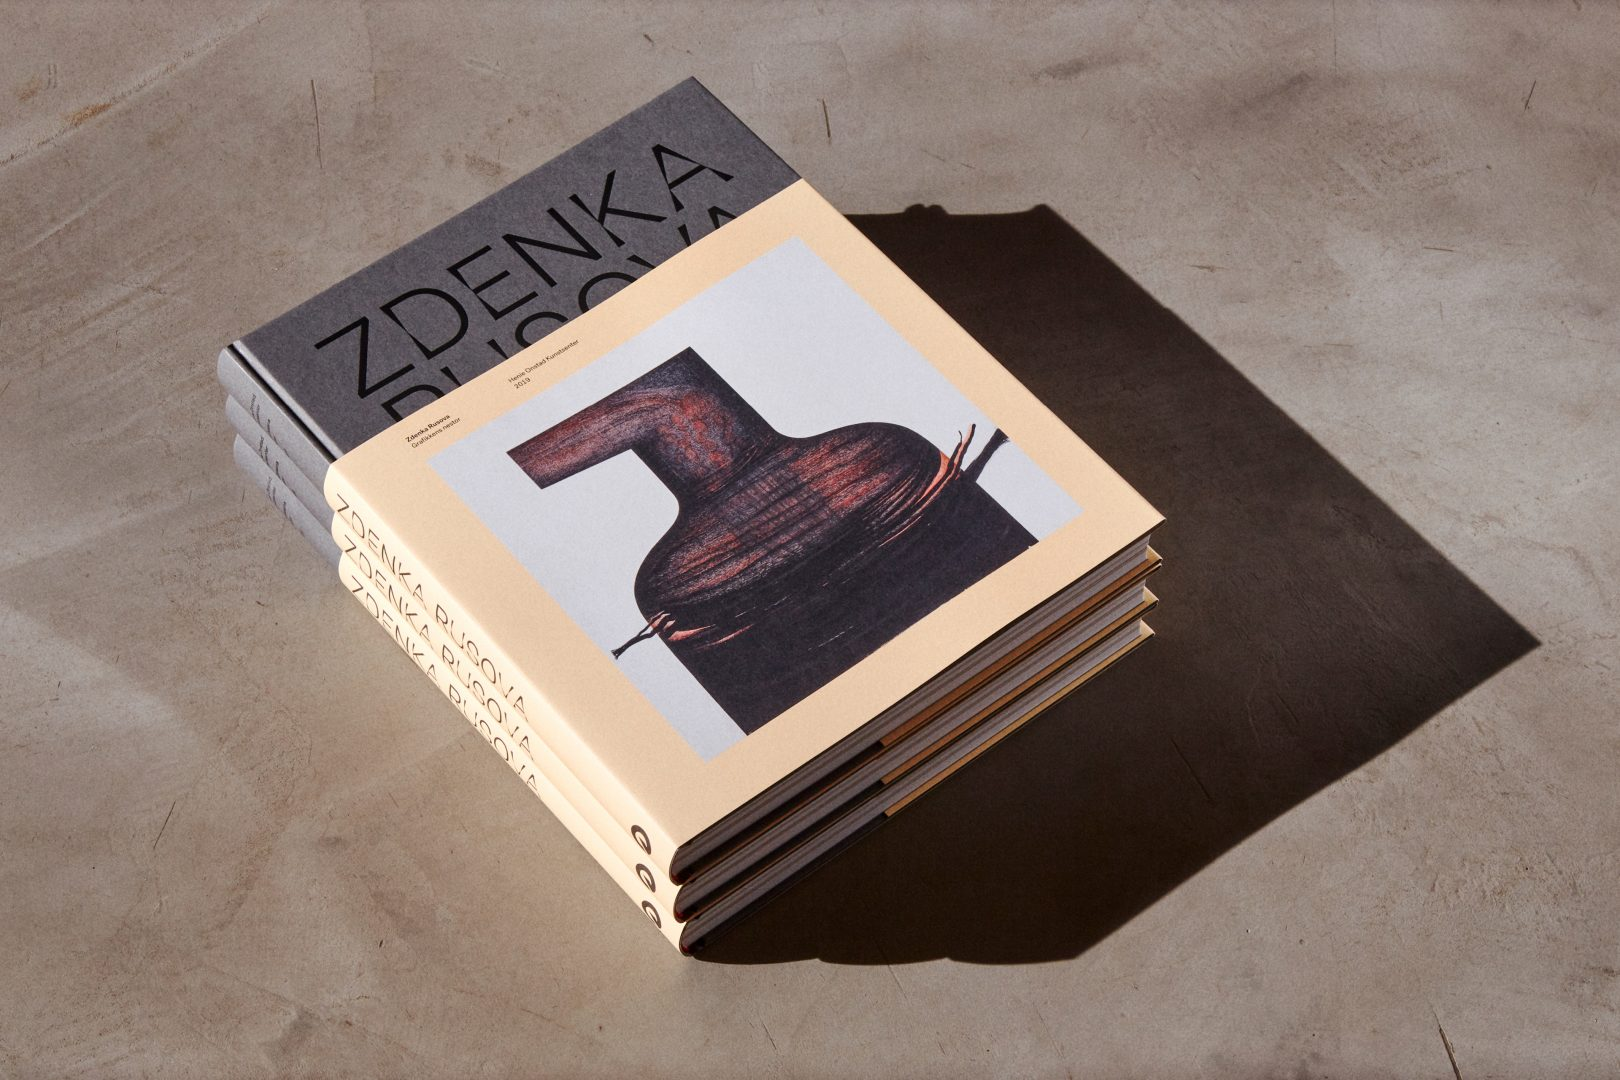 ANTI designed a catalogue for Zdenka Rusova exhibition